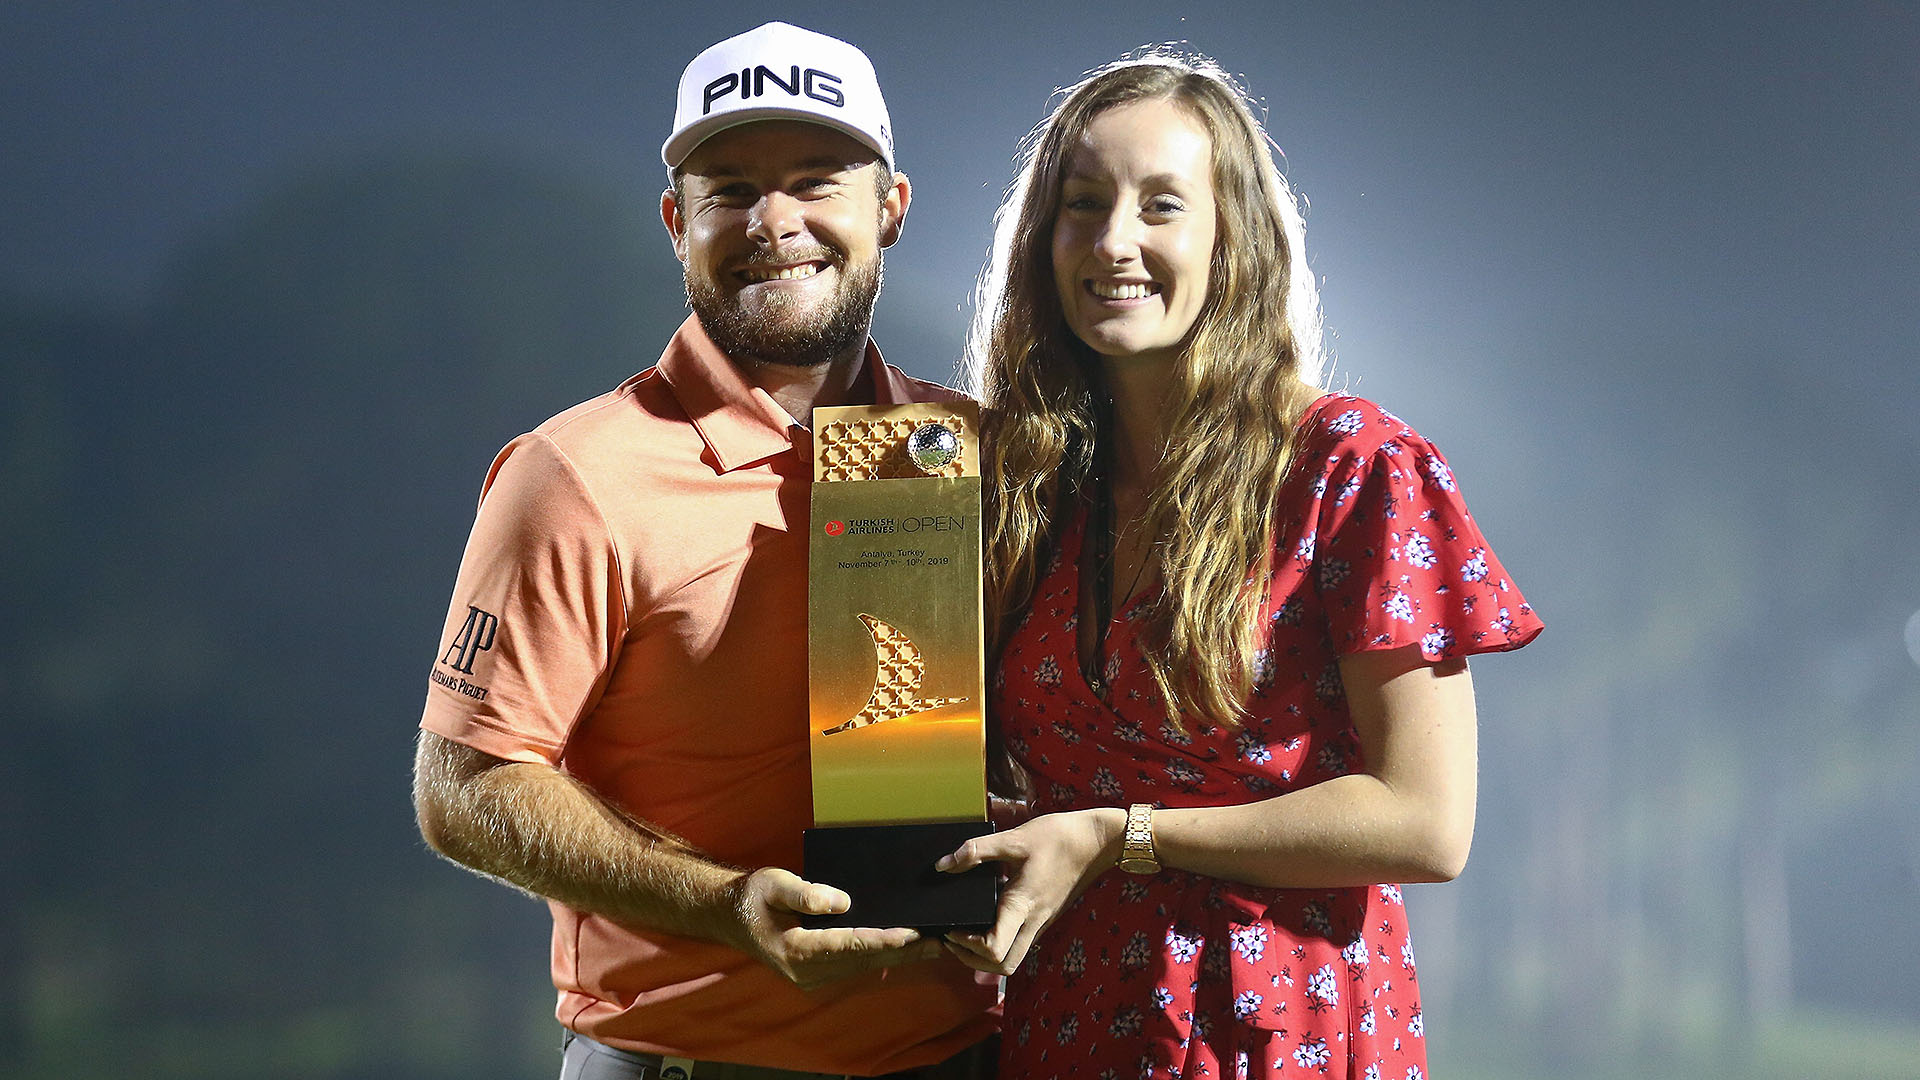 Amanda Redington best of: wins and wives on tour | golf channel